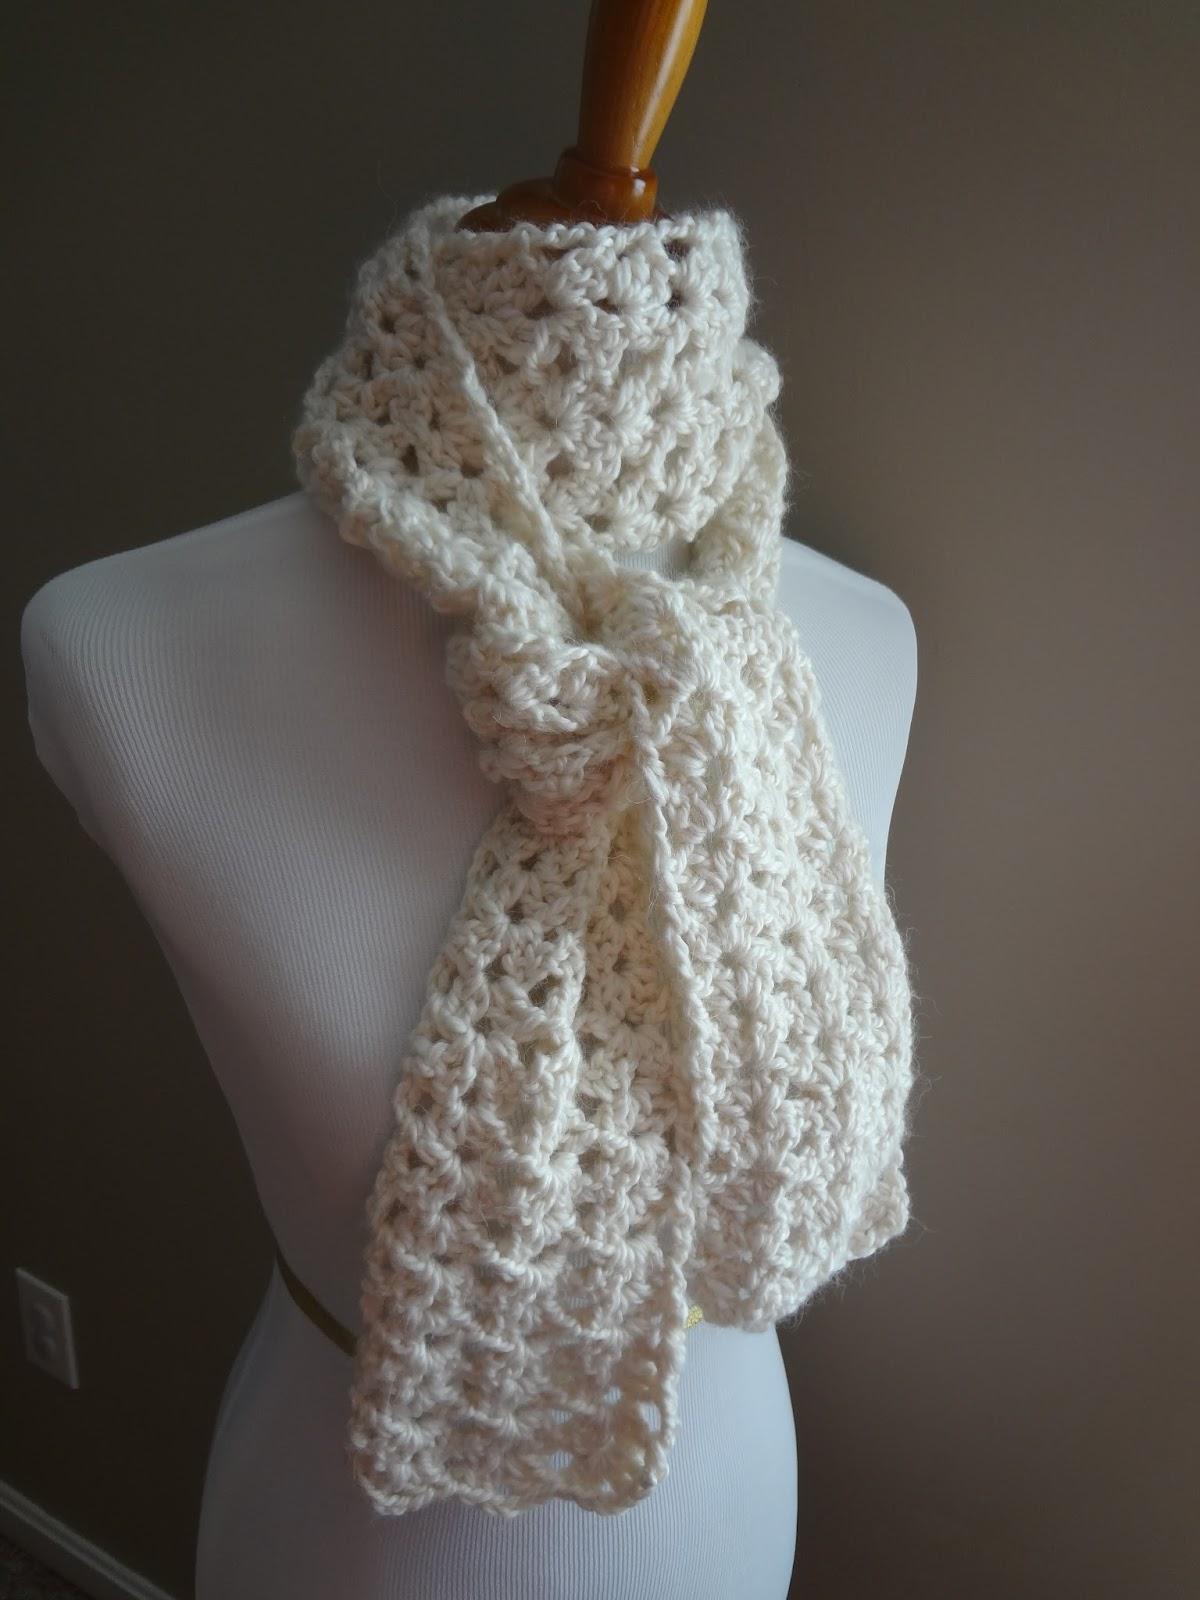 Free Crochet Patterns For Beginners : Fiber Flux: Free Crochet Pattern...Vanilla Bean Scarf!